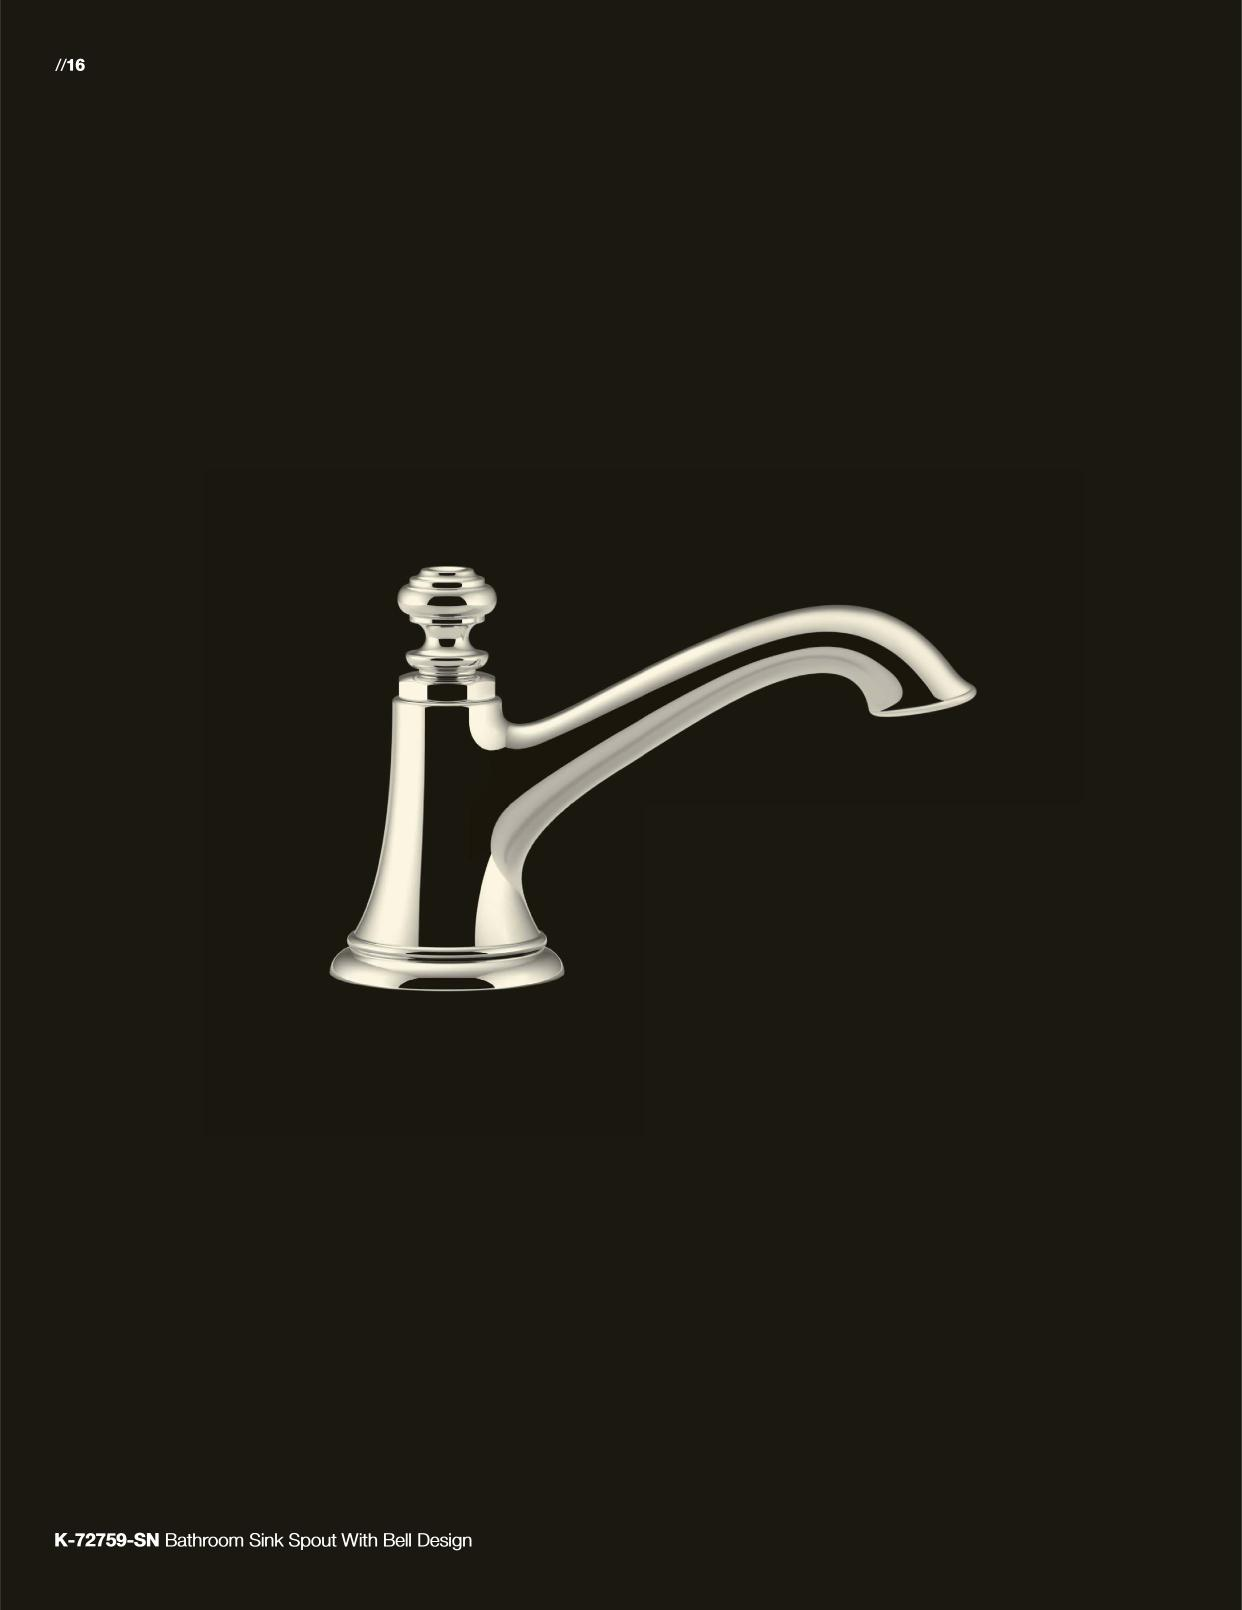 Vibrant Polished Nickel - Artifacts Bathroom Faucet Collection Page 16